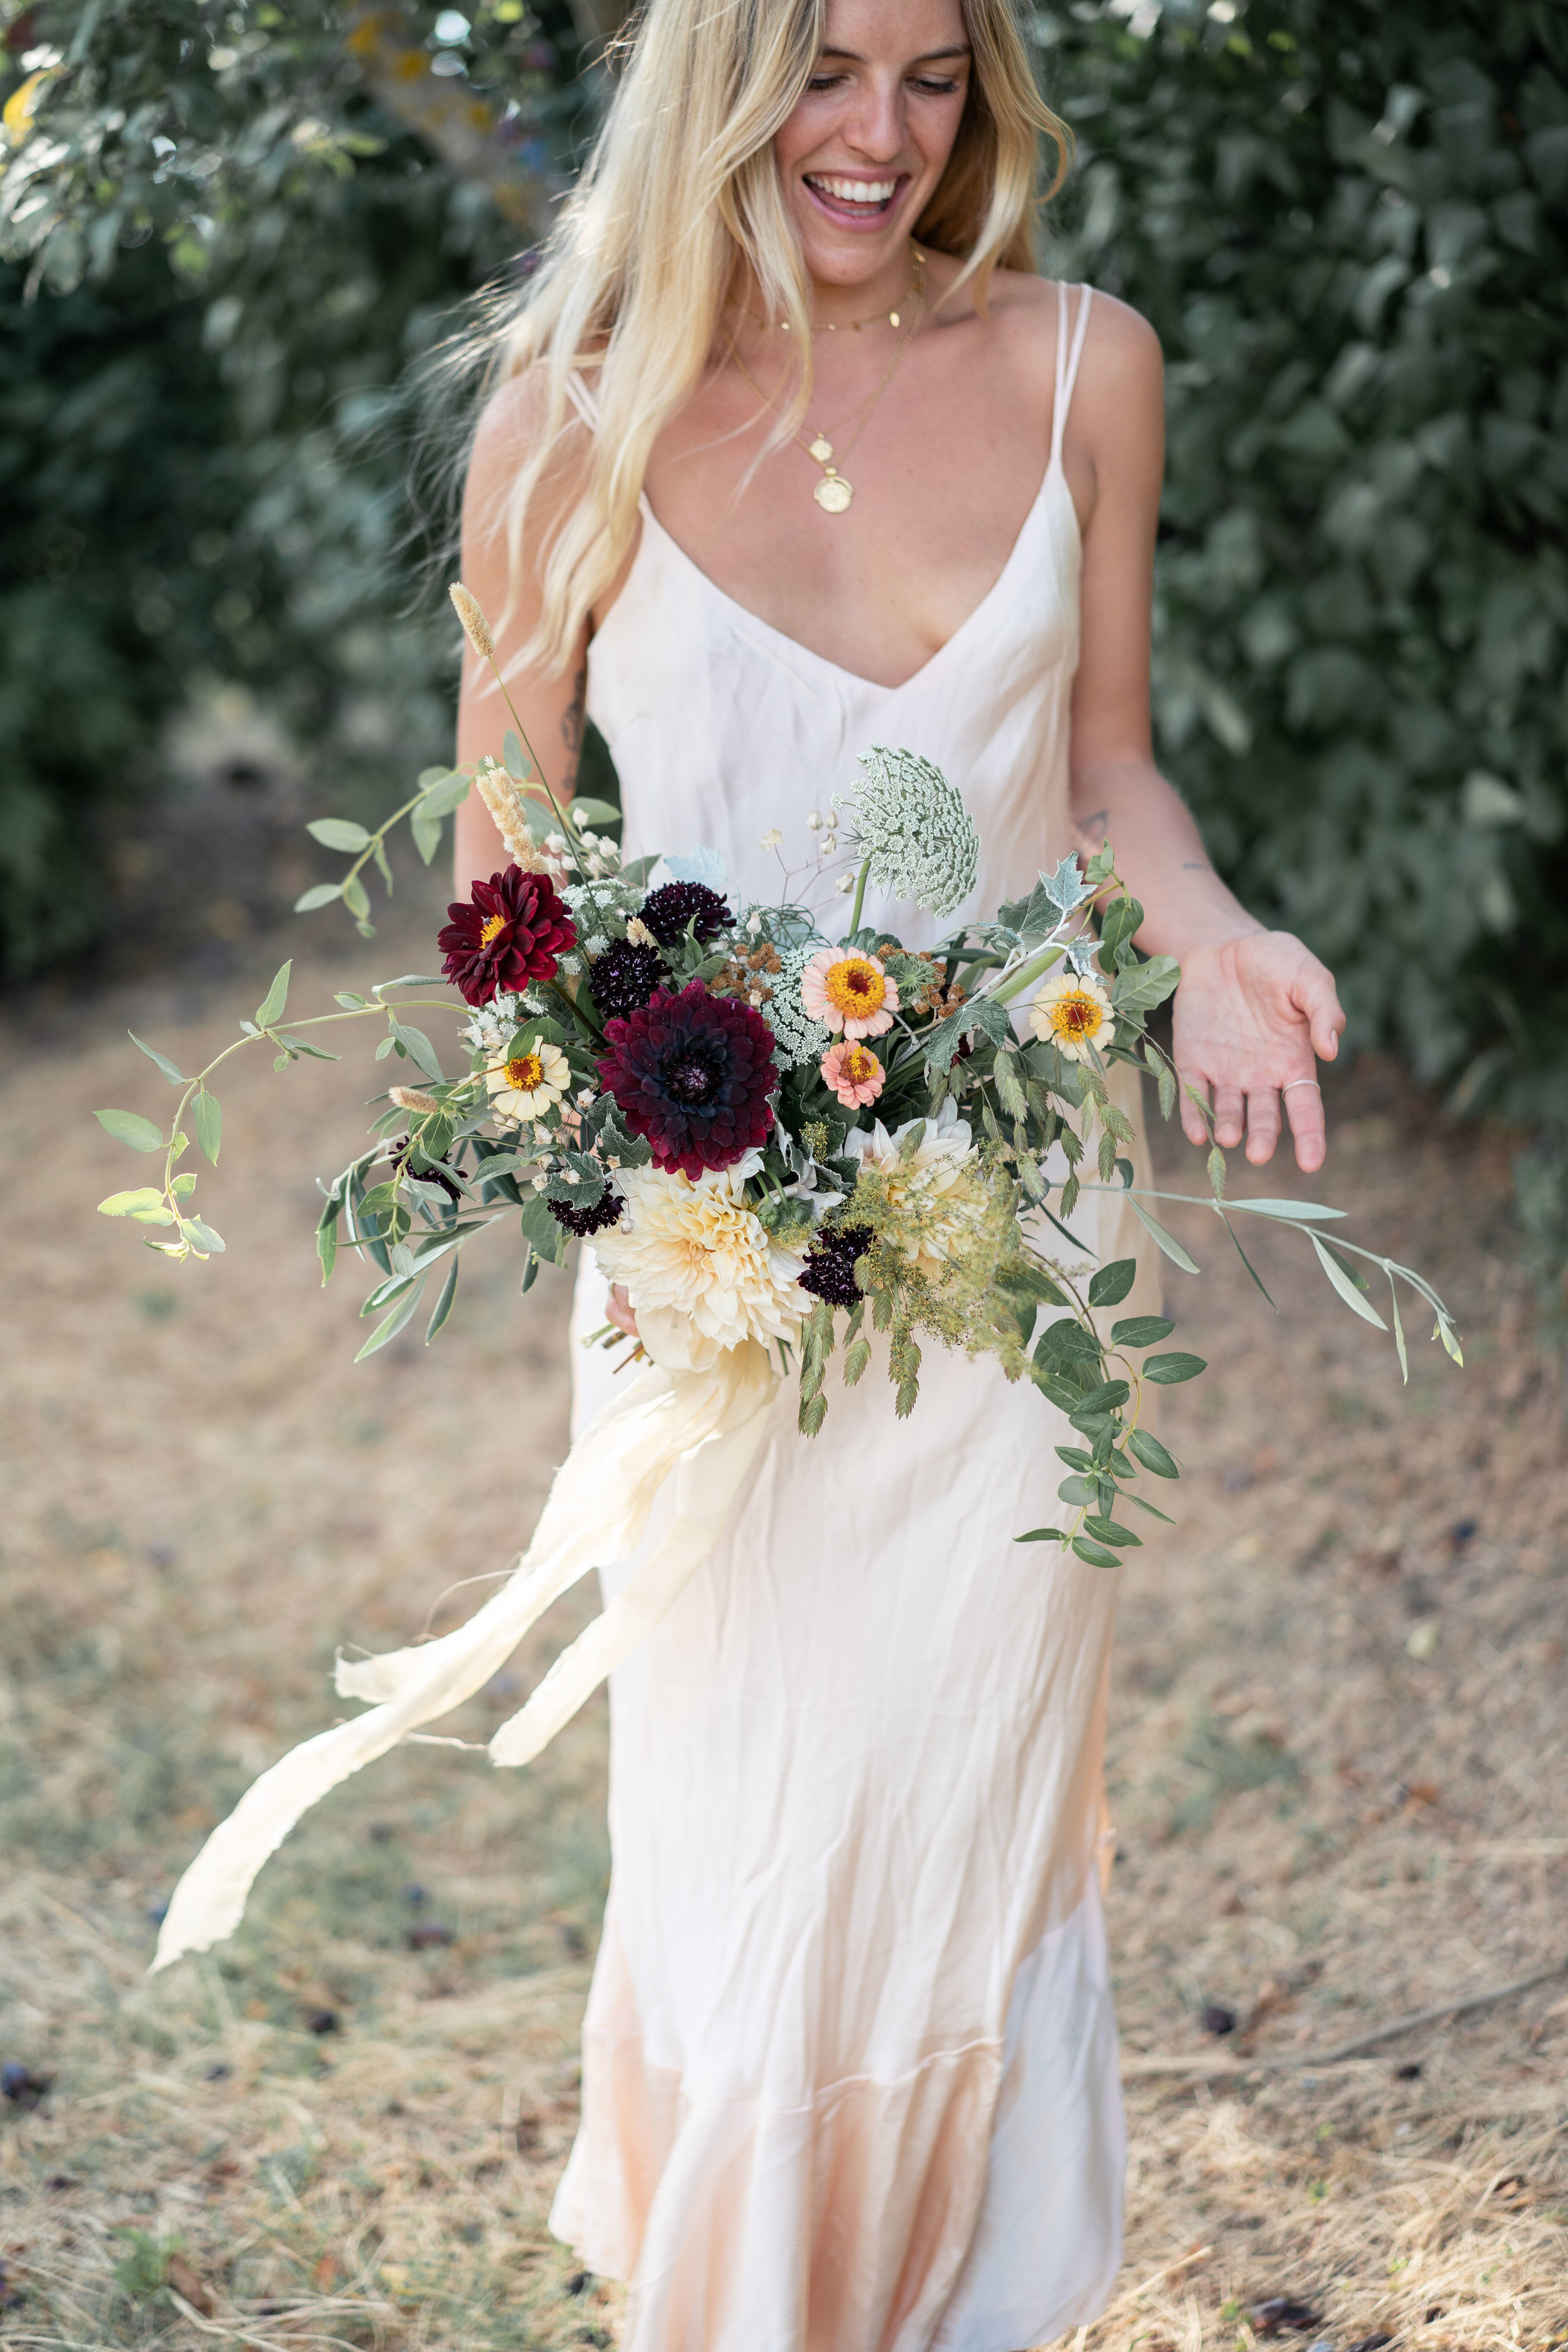 Dahlia, Rose, coneflower, echinacea flower, Floristry Workshop Tuscany by Lost In Love Photography